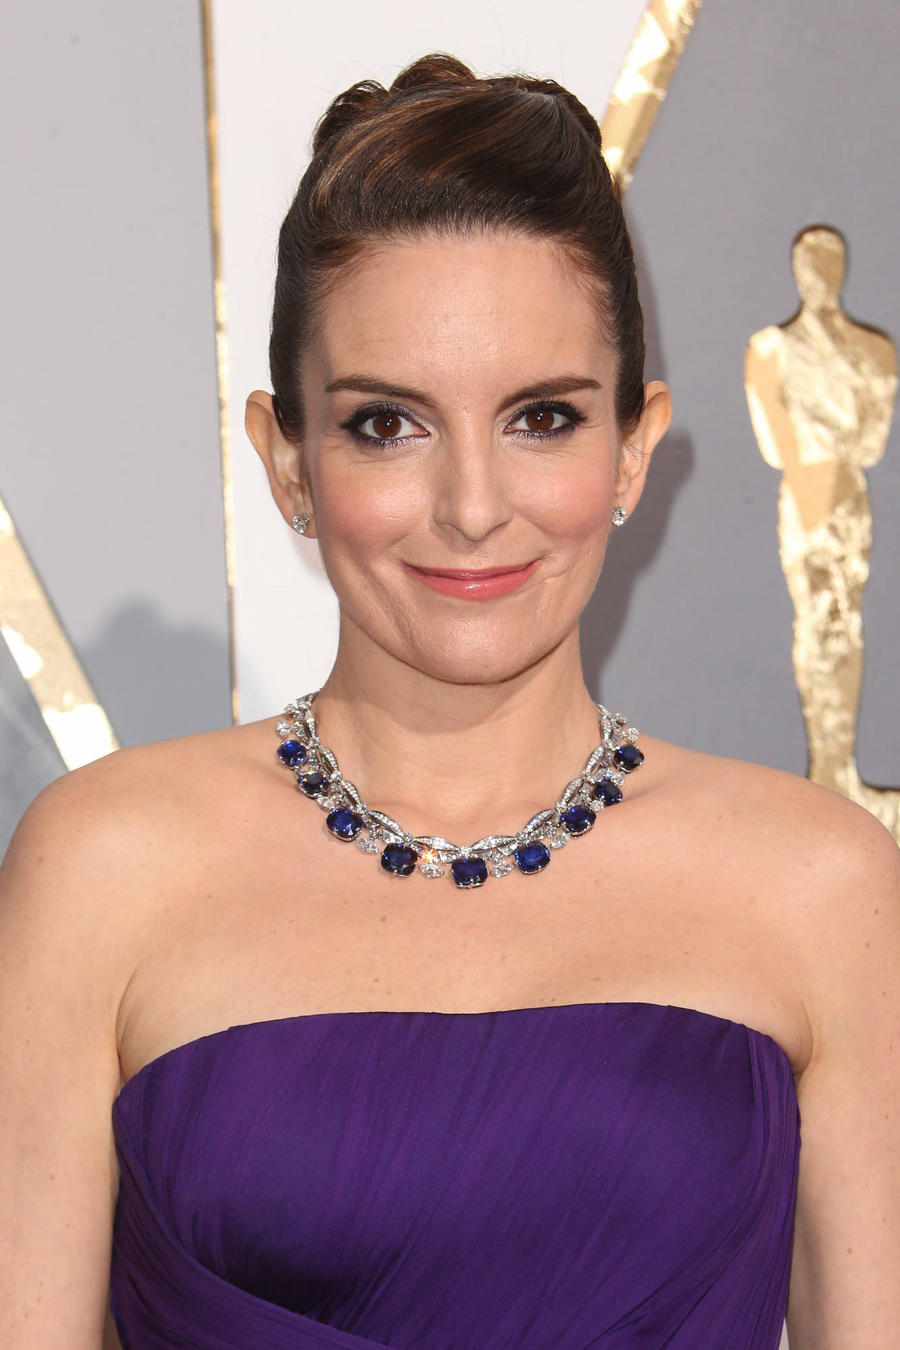 Tina Fey: 'The Academy Awards Were Hollywood Nonsense'